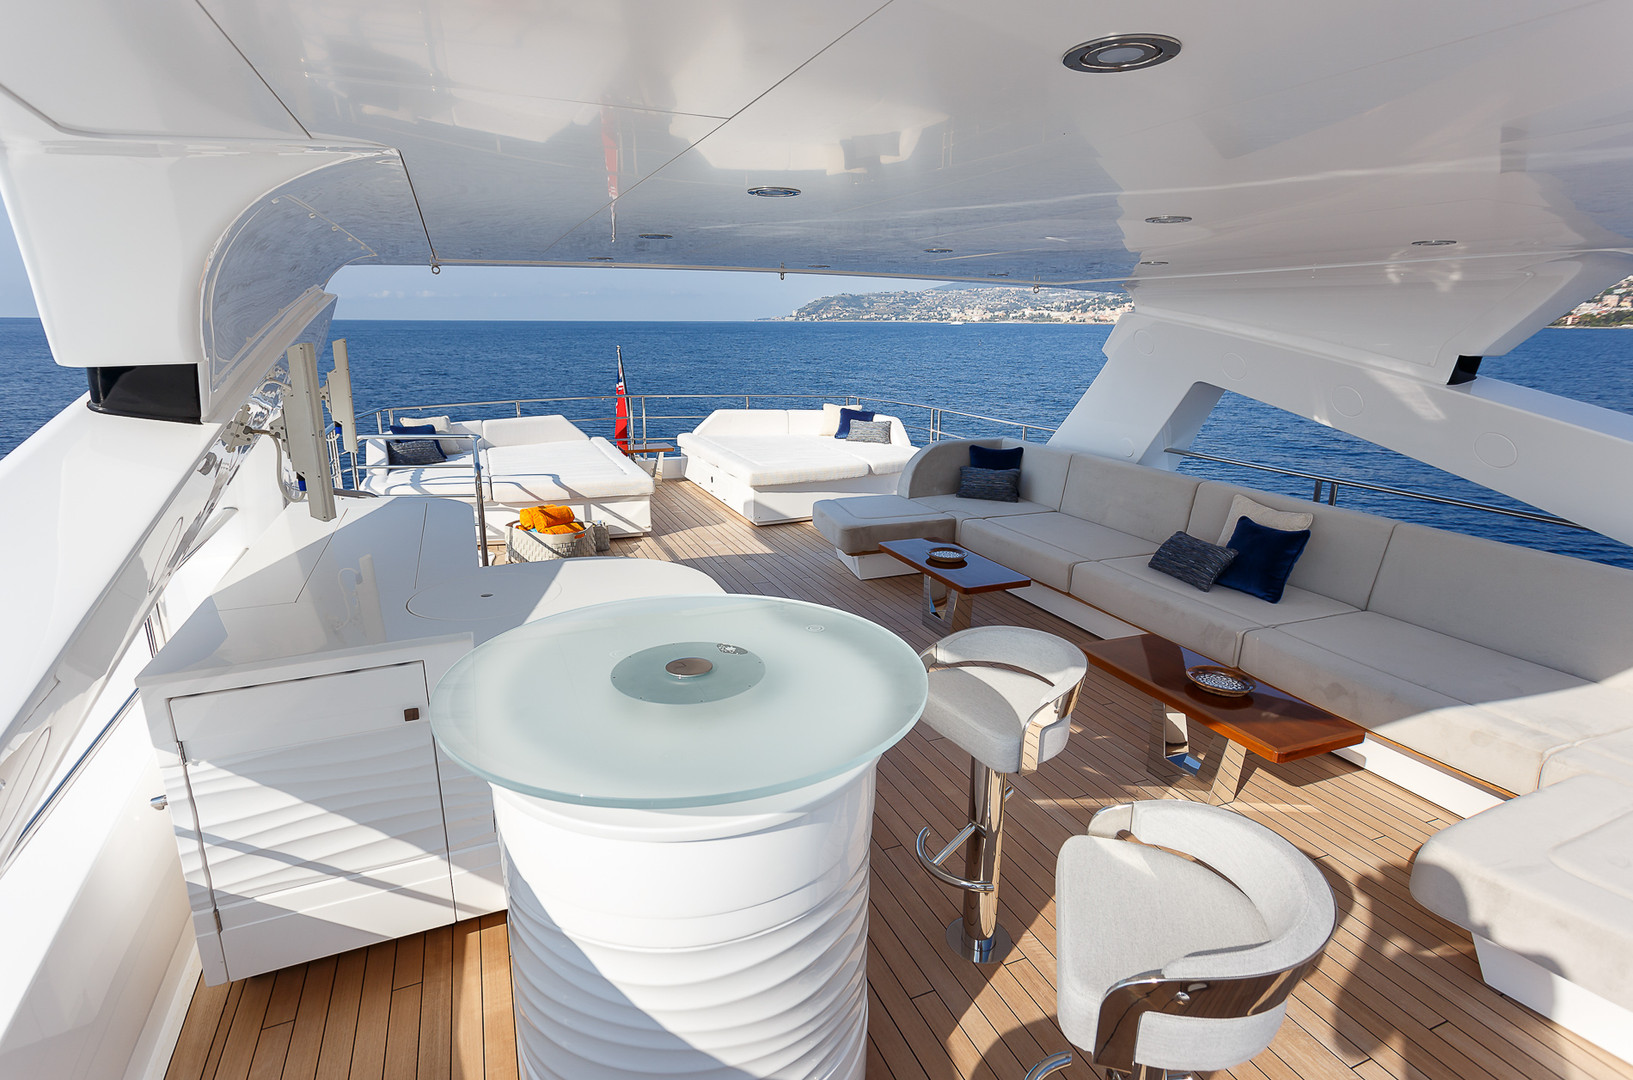 Yacht LADY M - sun deck, the focal point for charter guests!